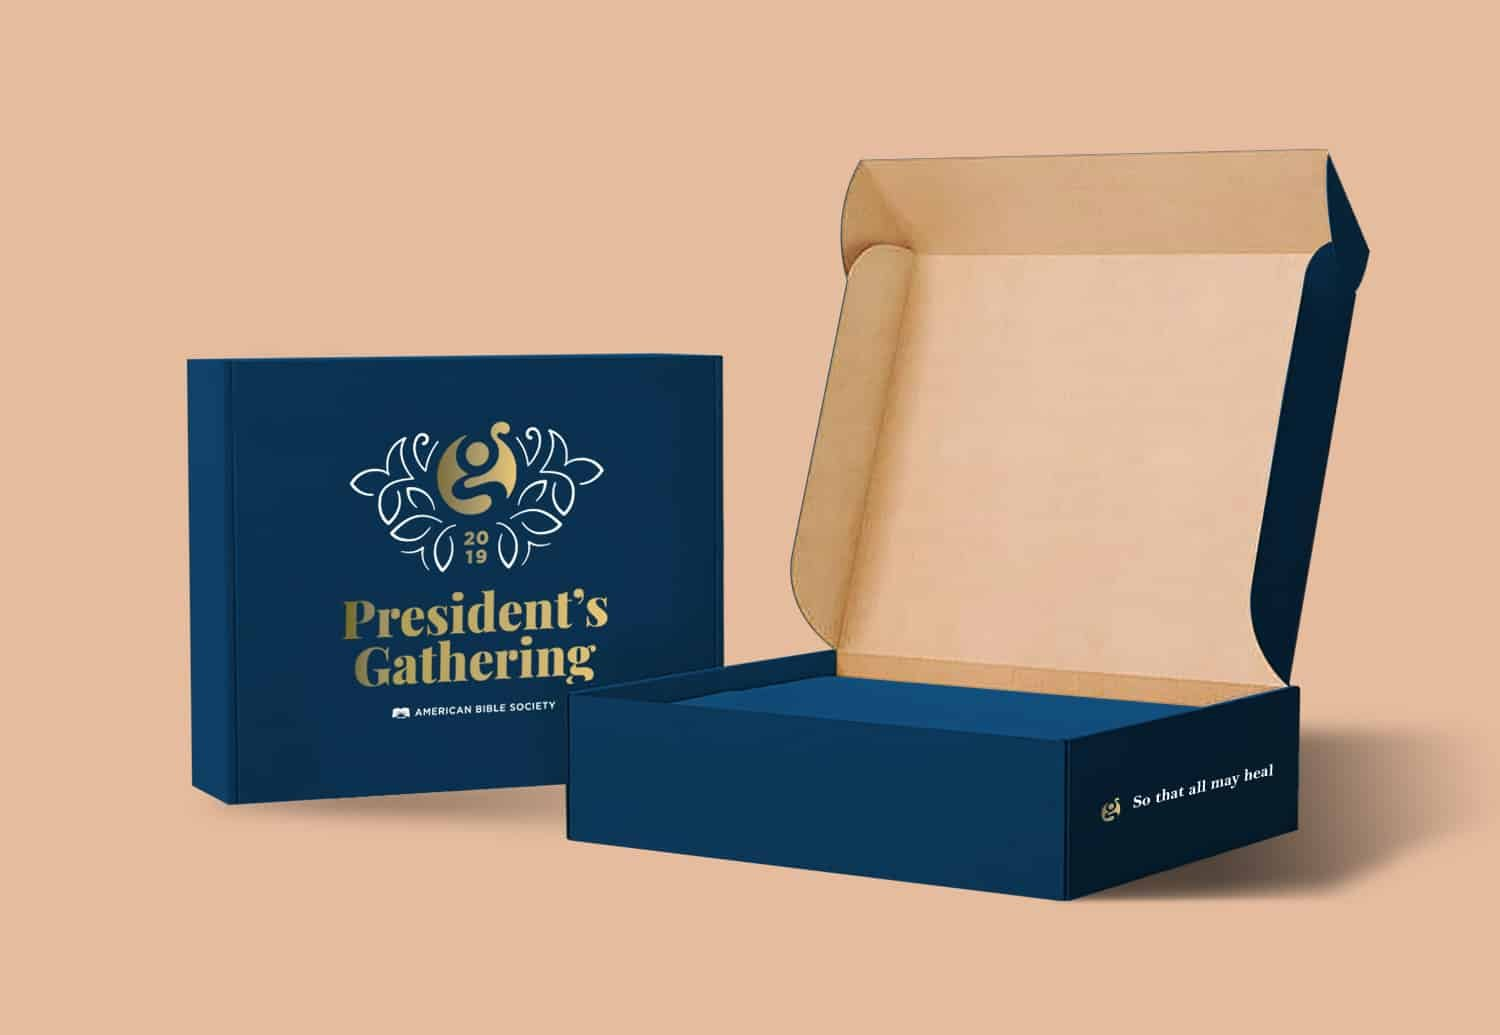 best standout product packaging design